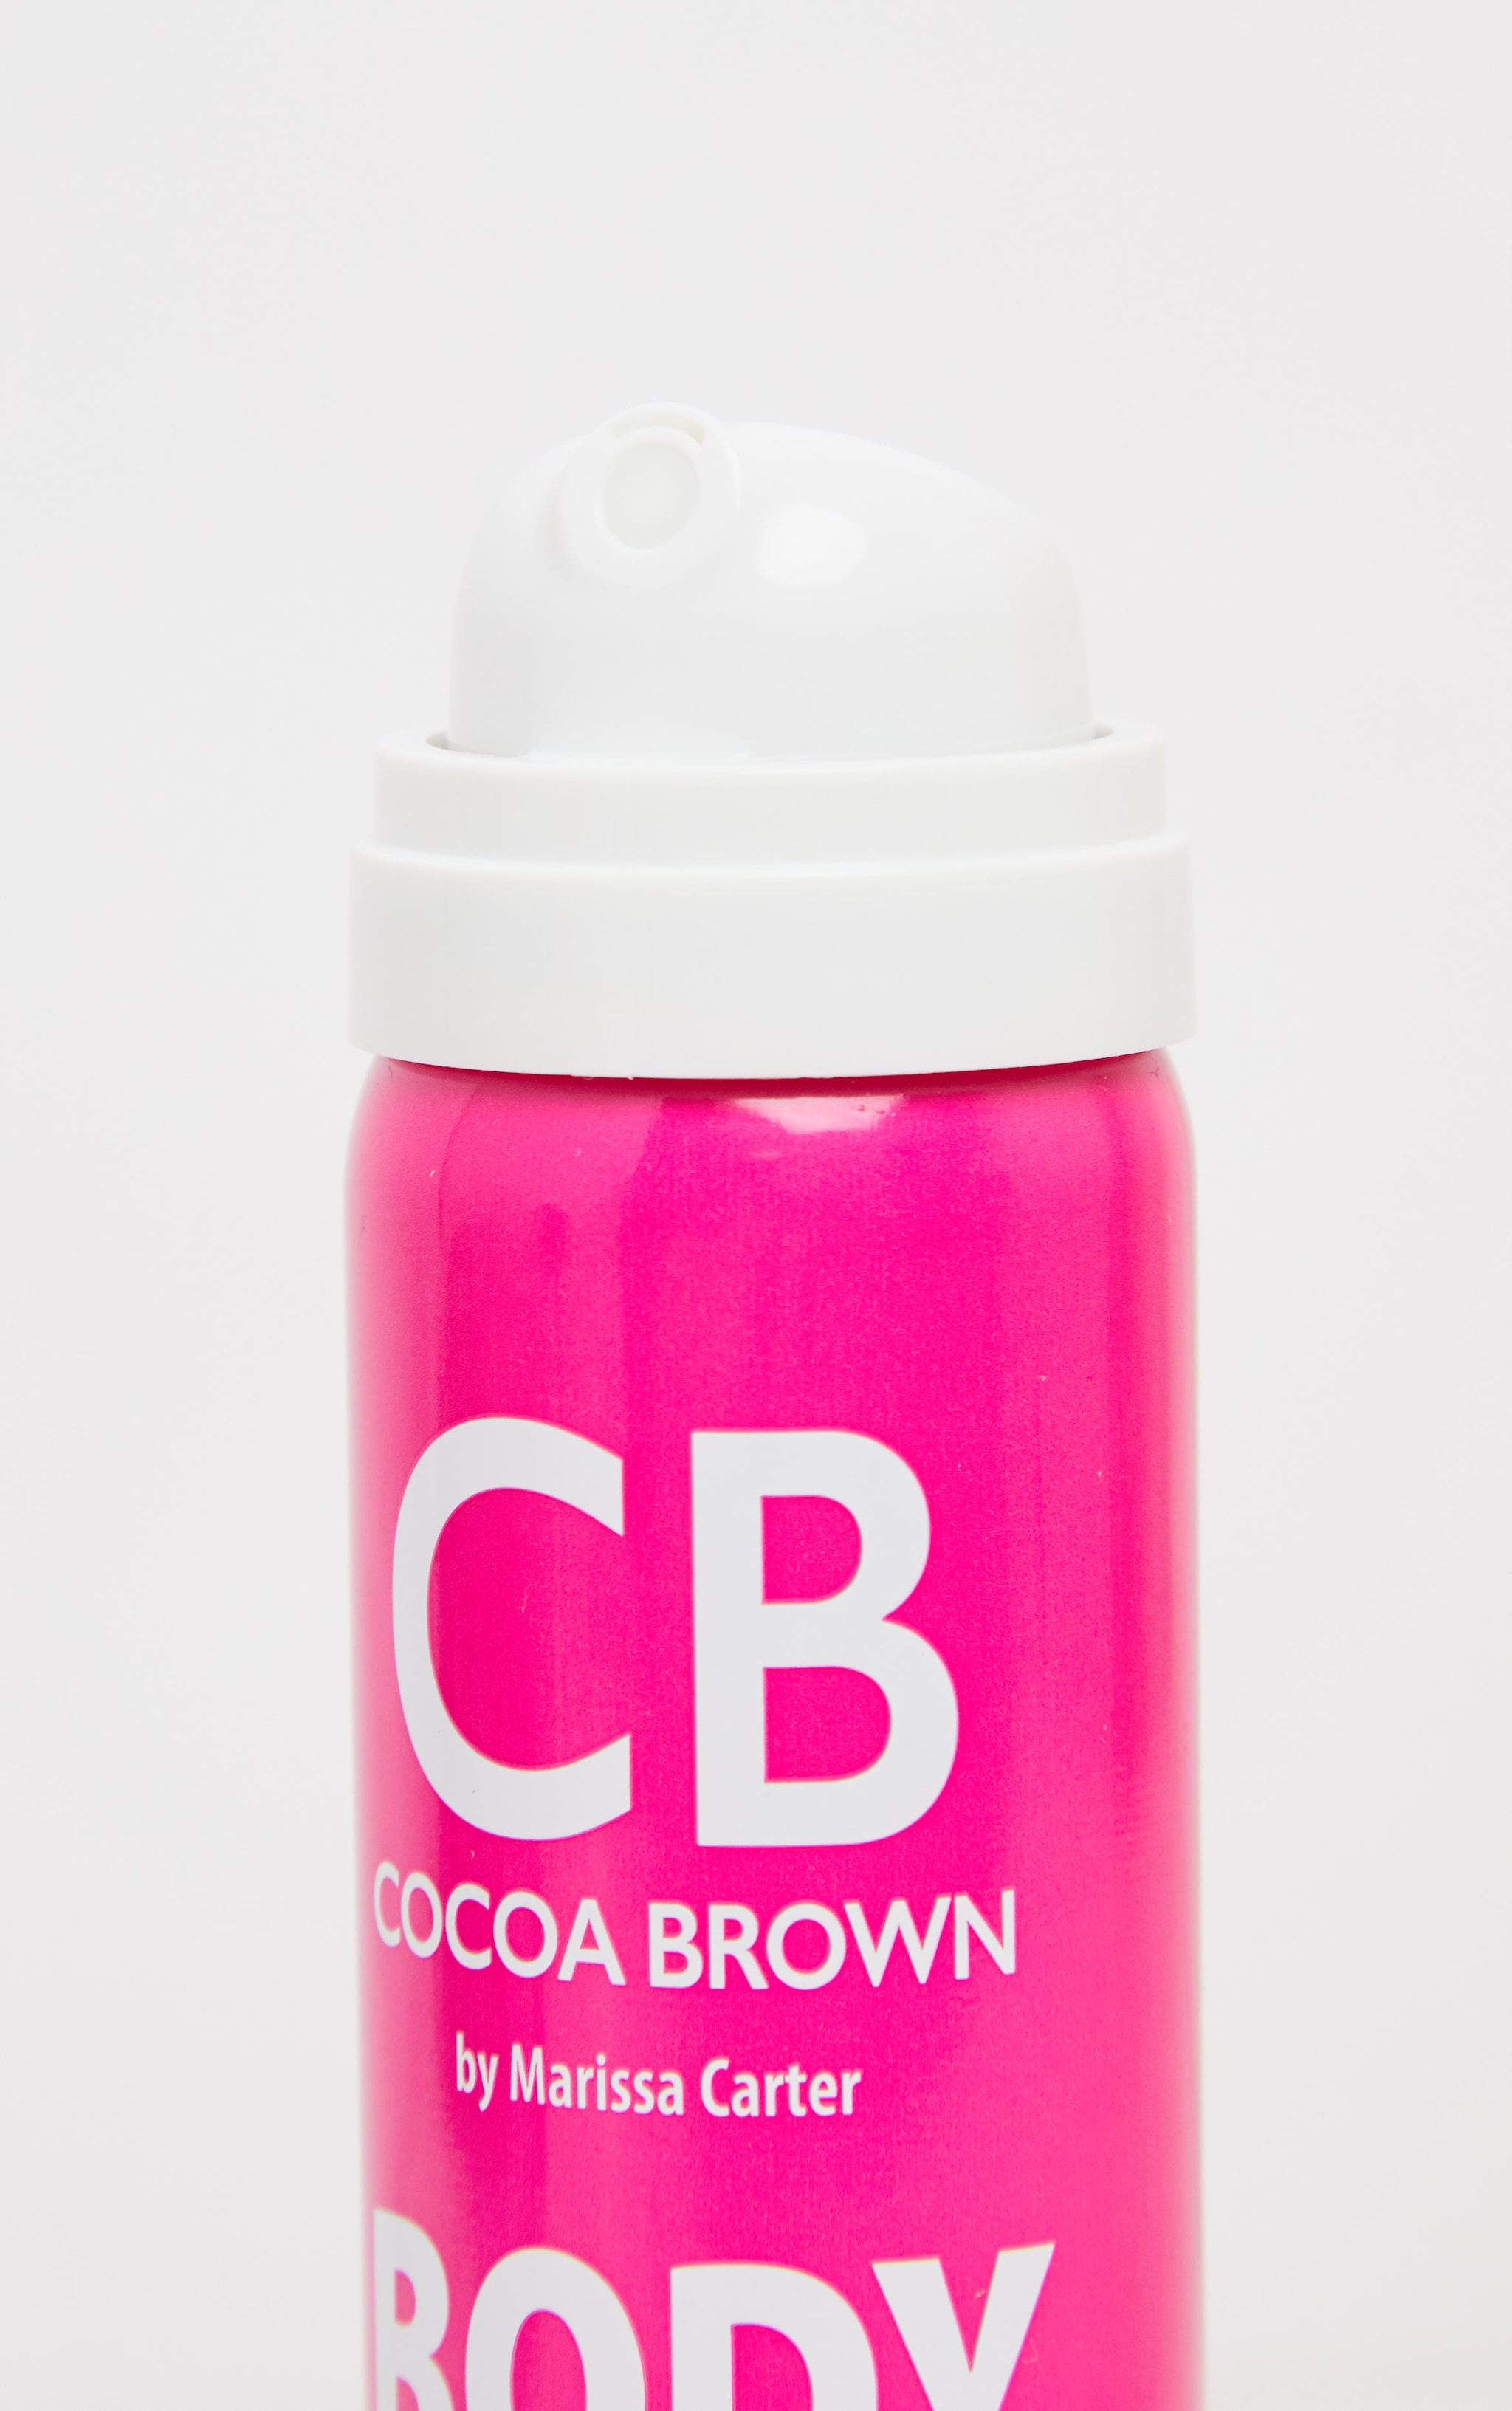 Cocoa Brown Body Makeup Colour and Coverage Medium 2